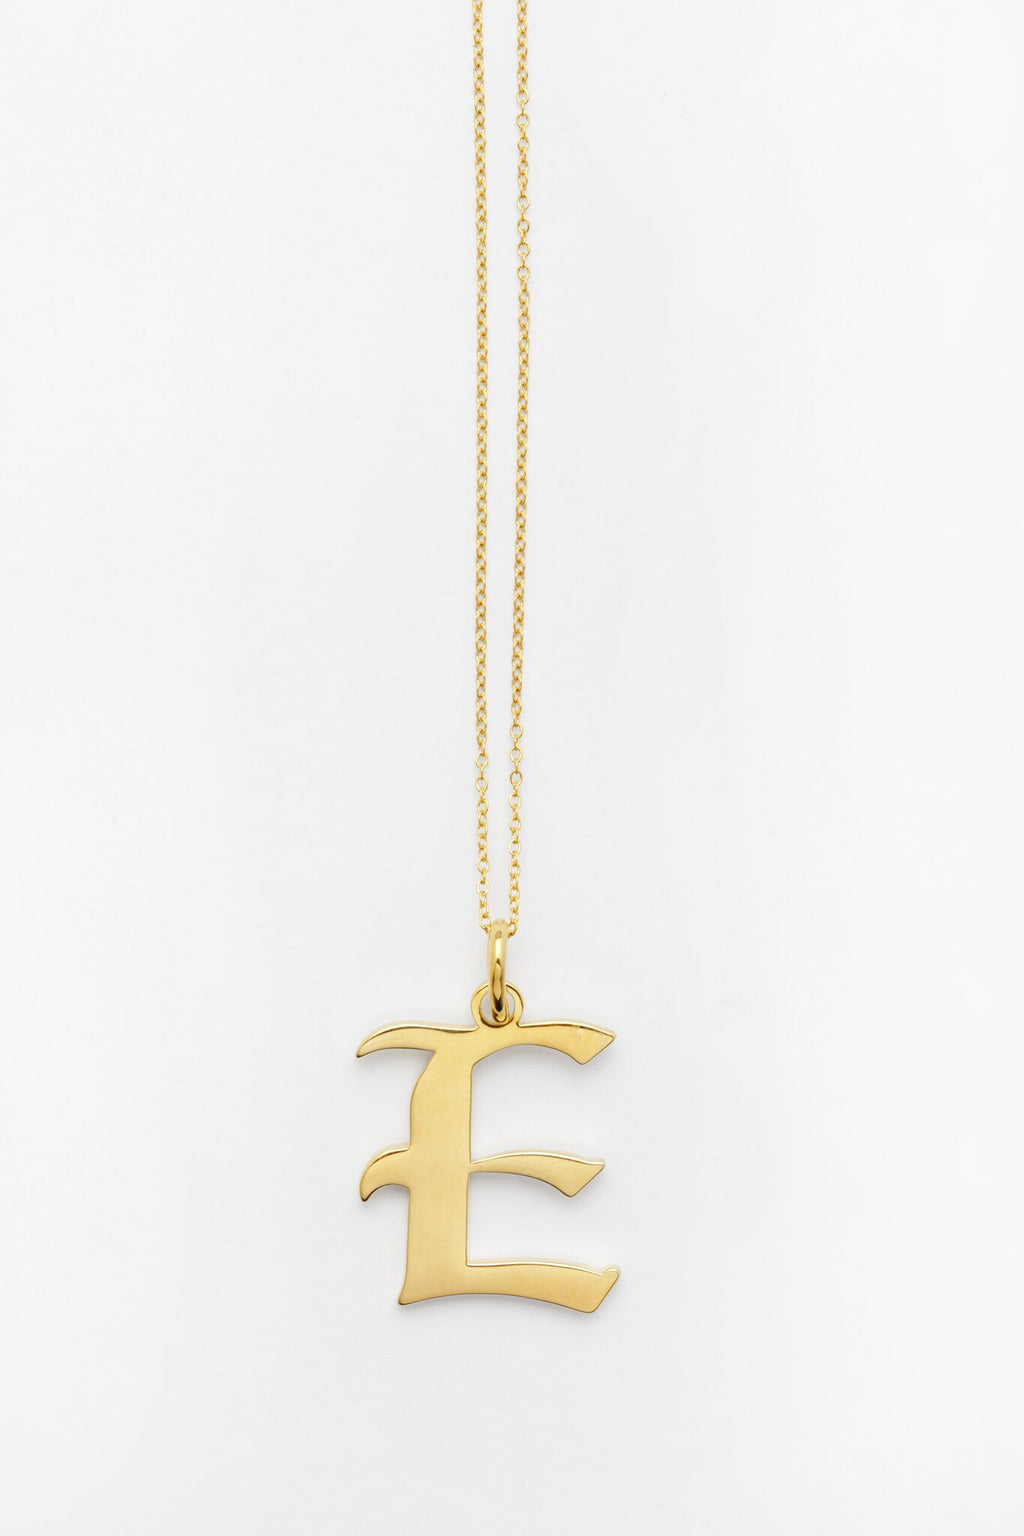 Gold Letter E Necklace